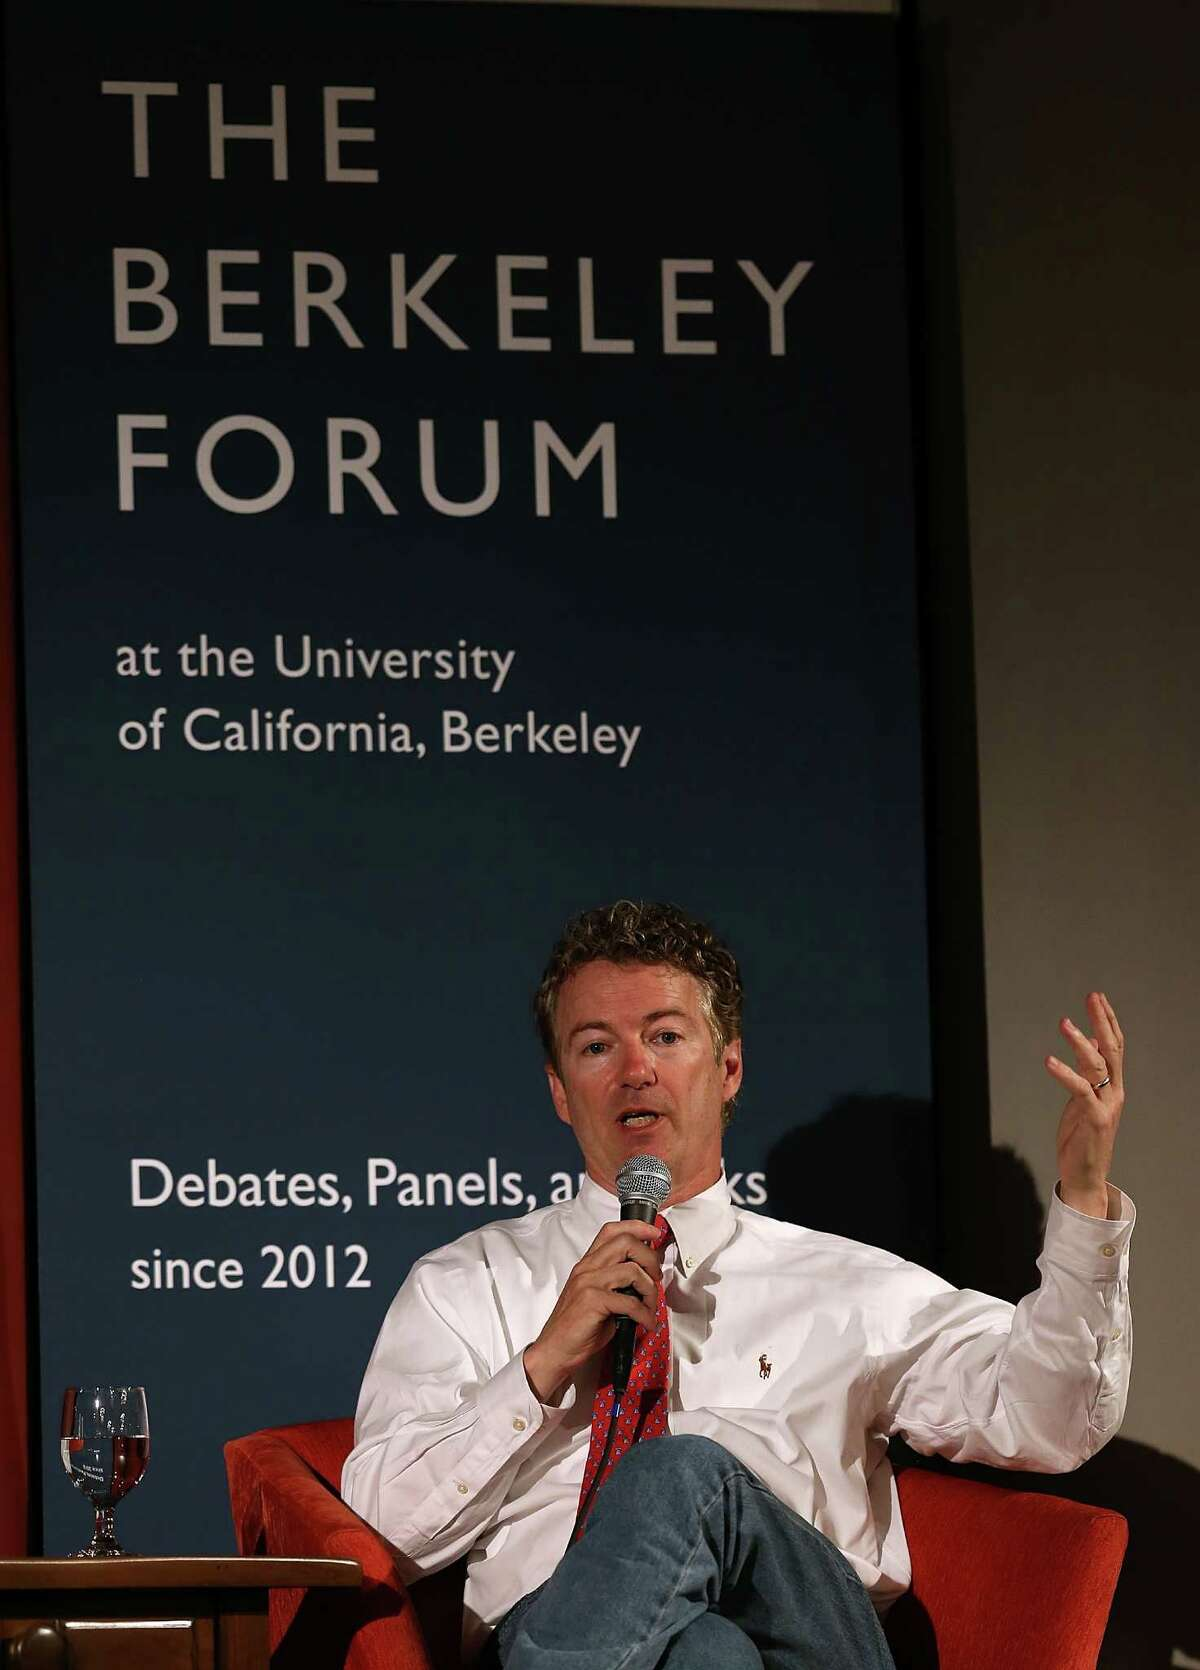 BERKELEY, CA - MARCH 19: U.S. Sen. Rand Paul (R-KY) speaks during the Berkeley Forum on the UC Berkeley campus on March 19, 2014 in Berkeley, California. Paul addressed the Berkeley Forum and focused on the importance of privacy and curtailing domestic government surveillance. (Photo by Justin Sullivan/Getty Images)